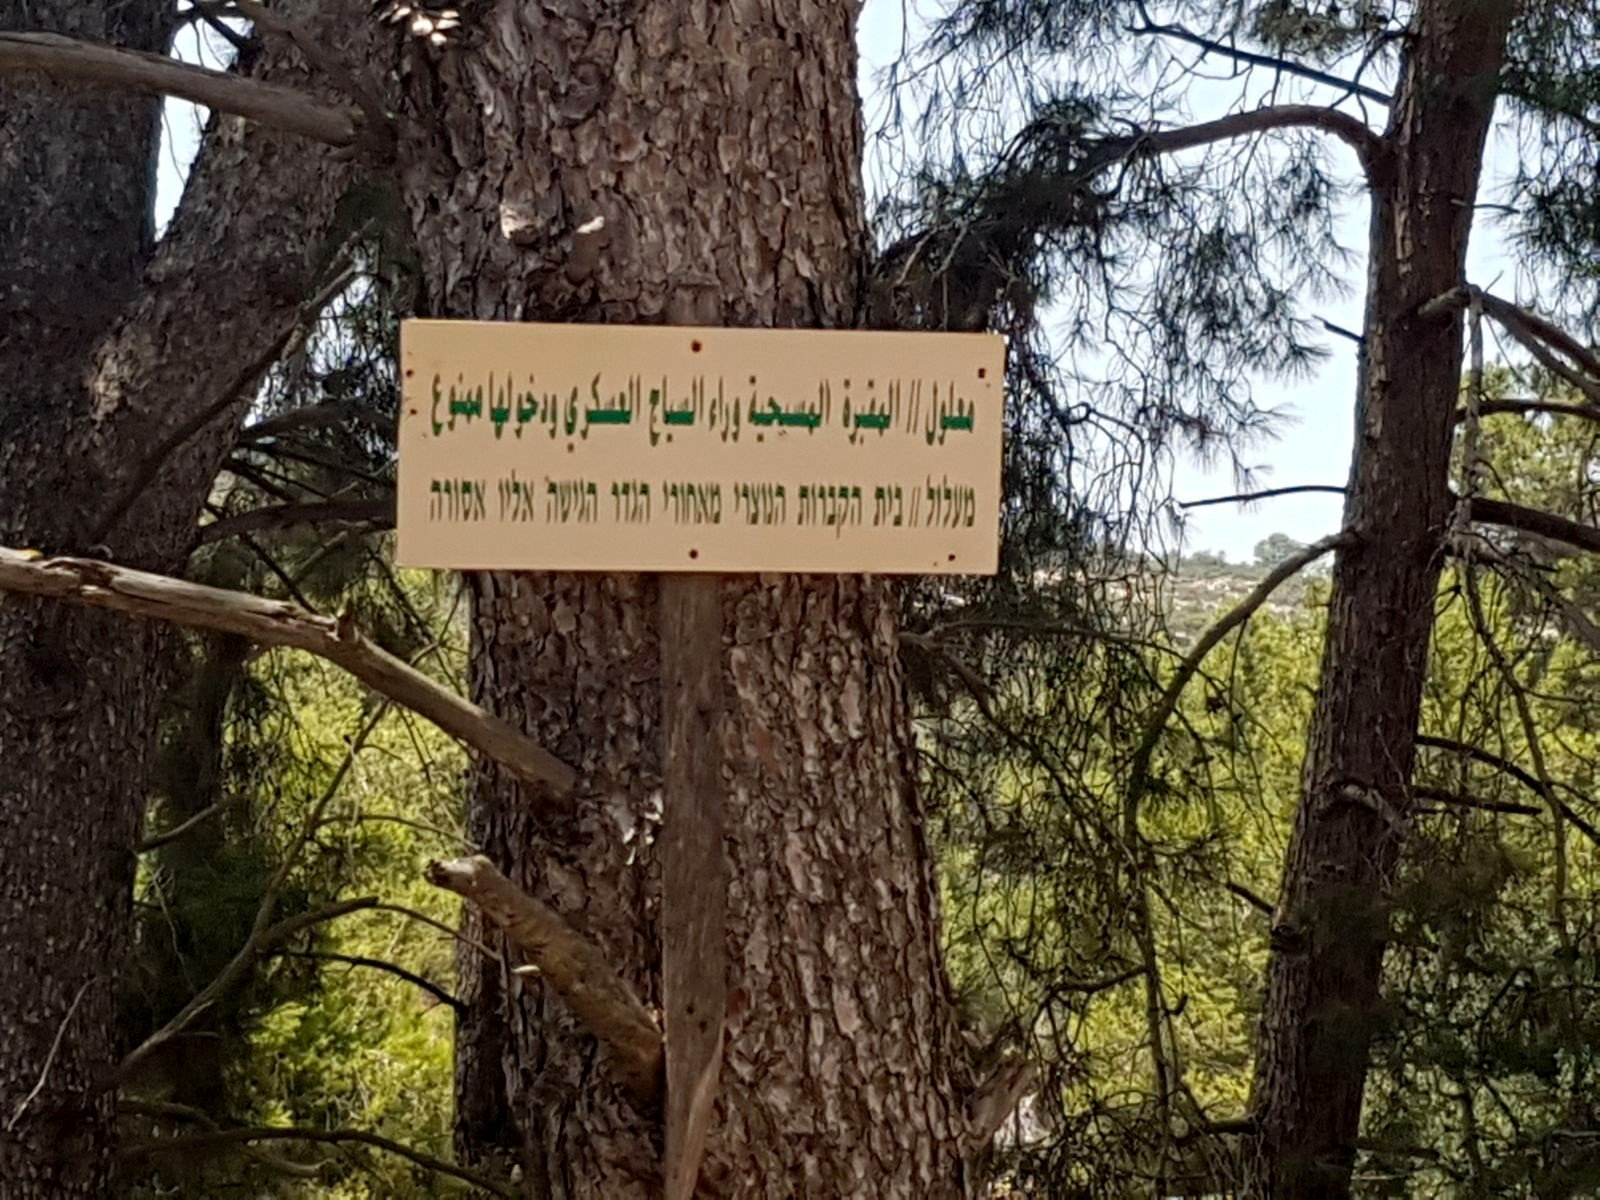 A Hebrew and Arabic sign in Ma'alul on the edge of the Israeli military base thst reads: Maalul | Christian cemetery behind the fence. Entry is forbidden